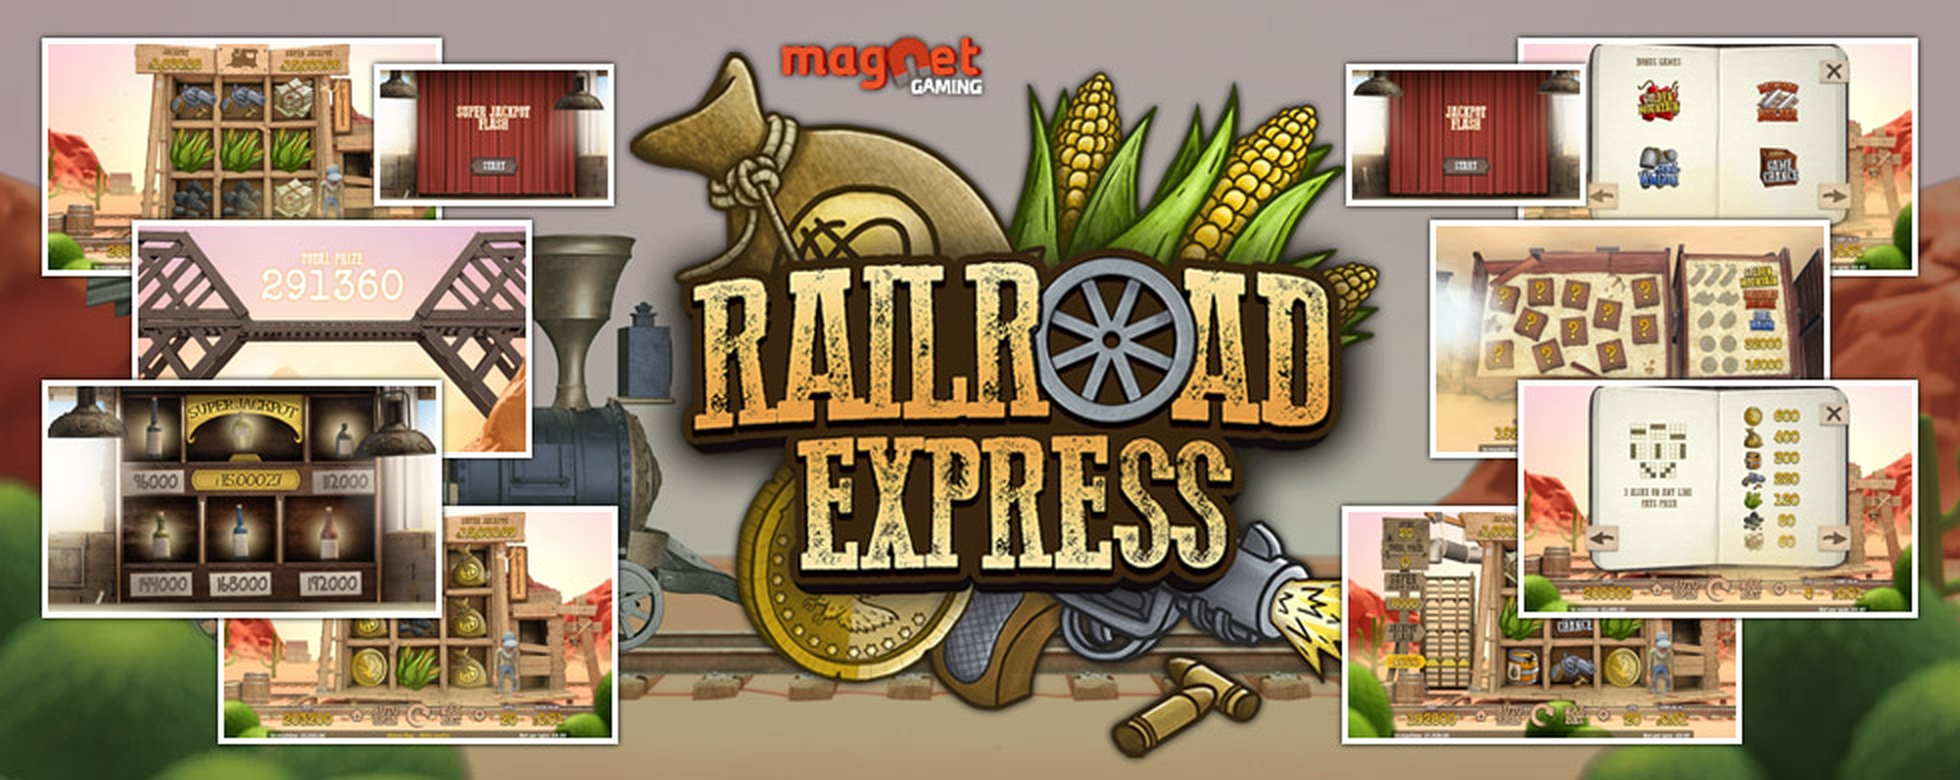 The Railroad Express Online Slot Demo Game by Magnet Gaming